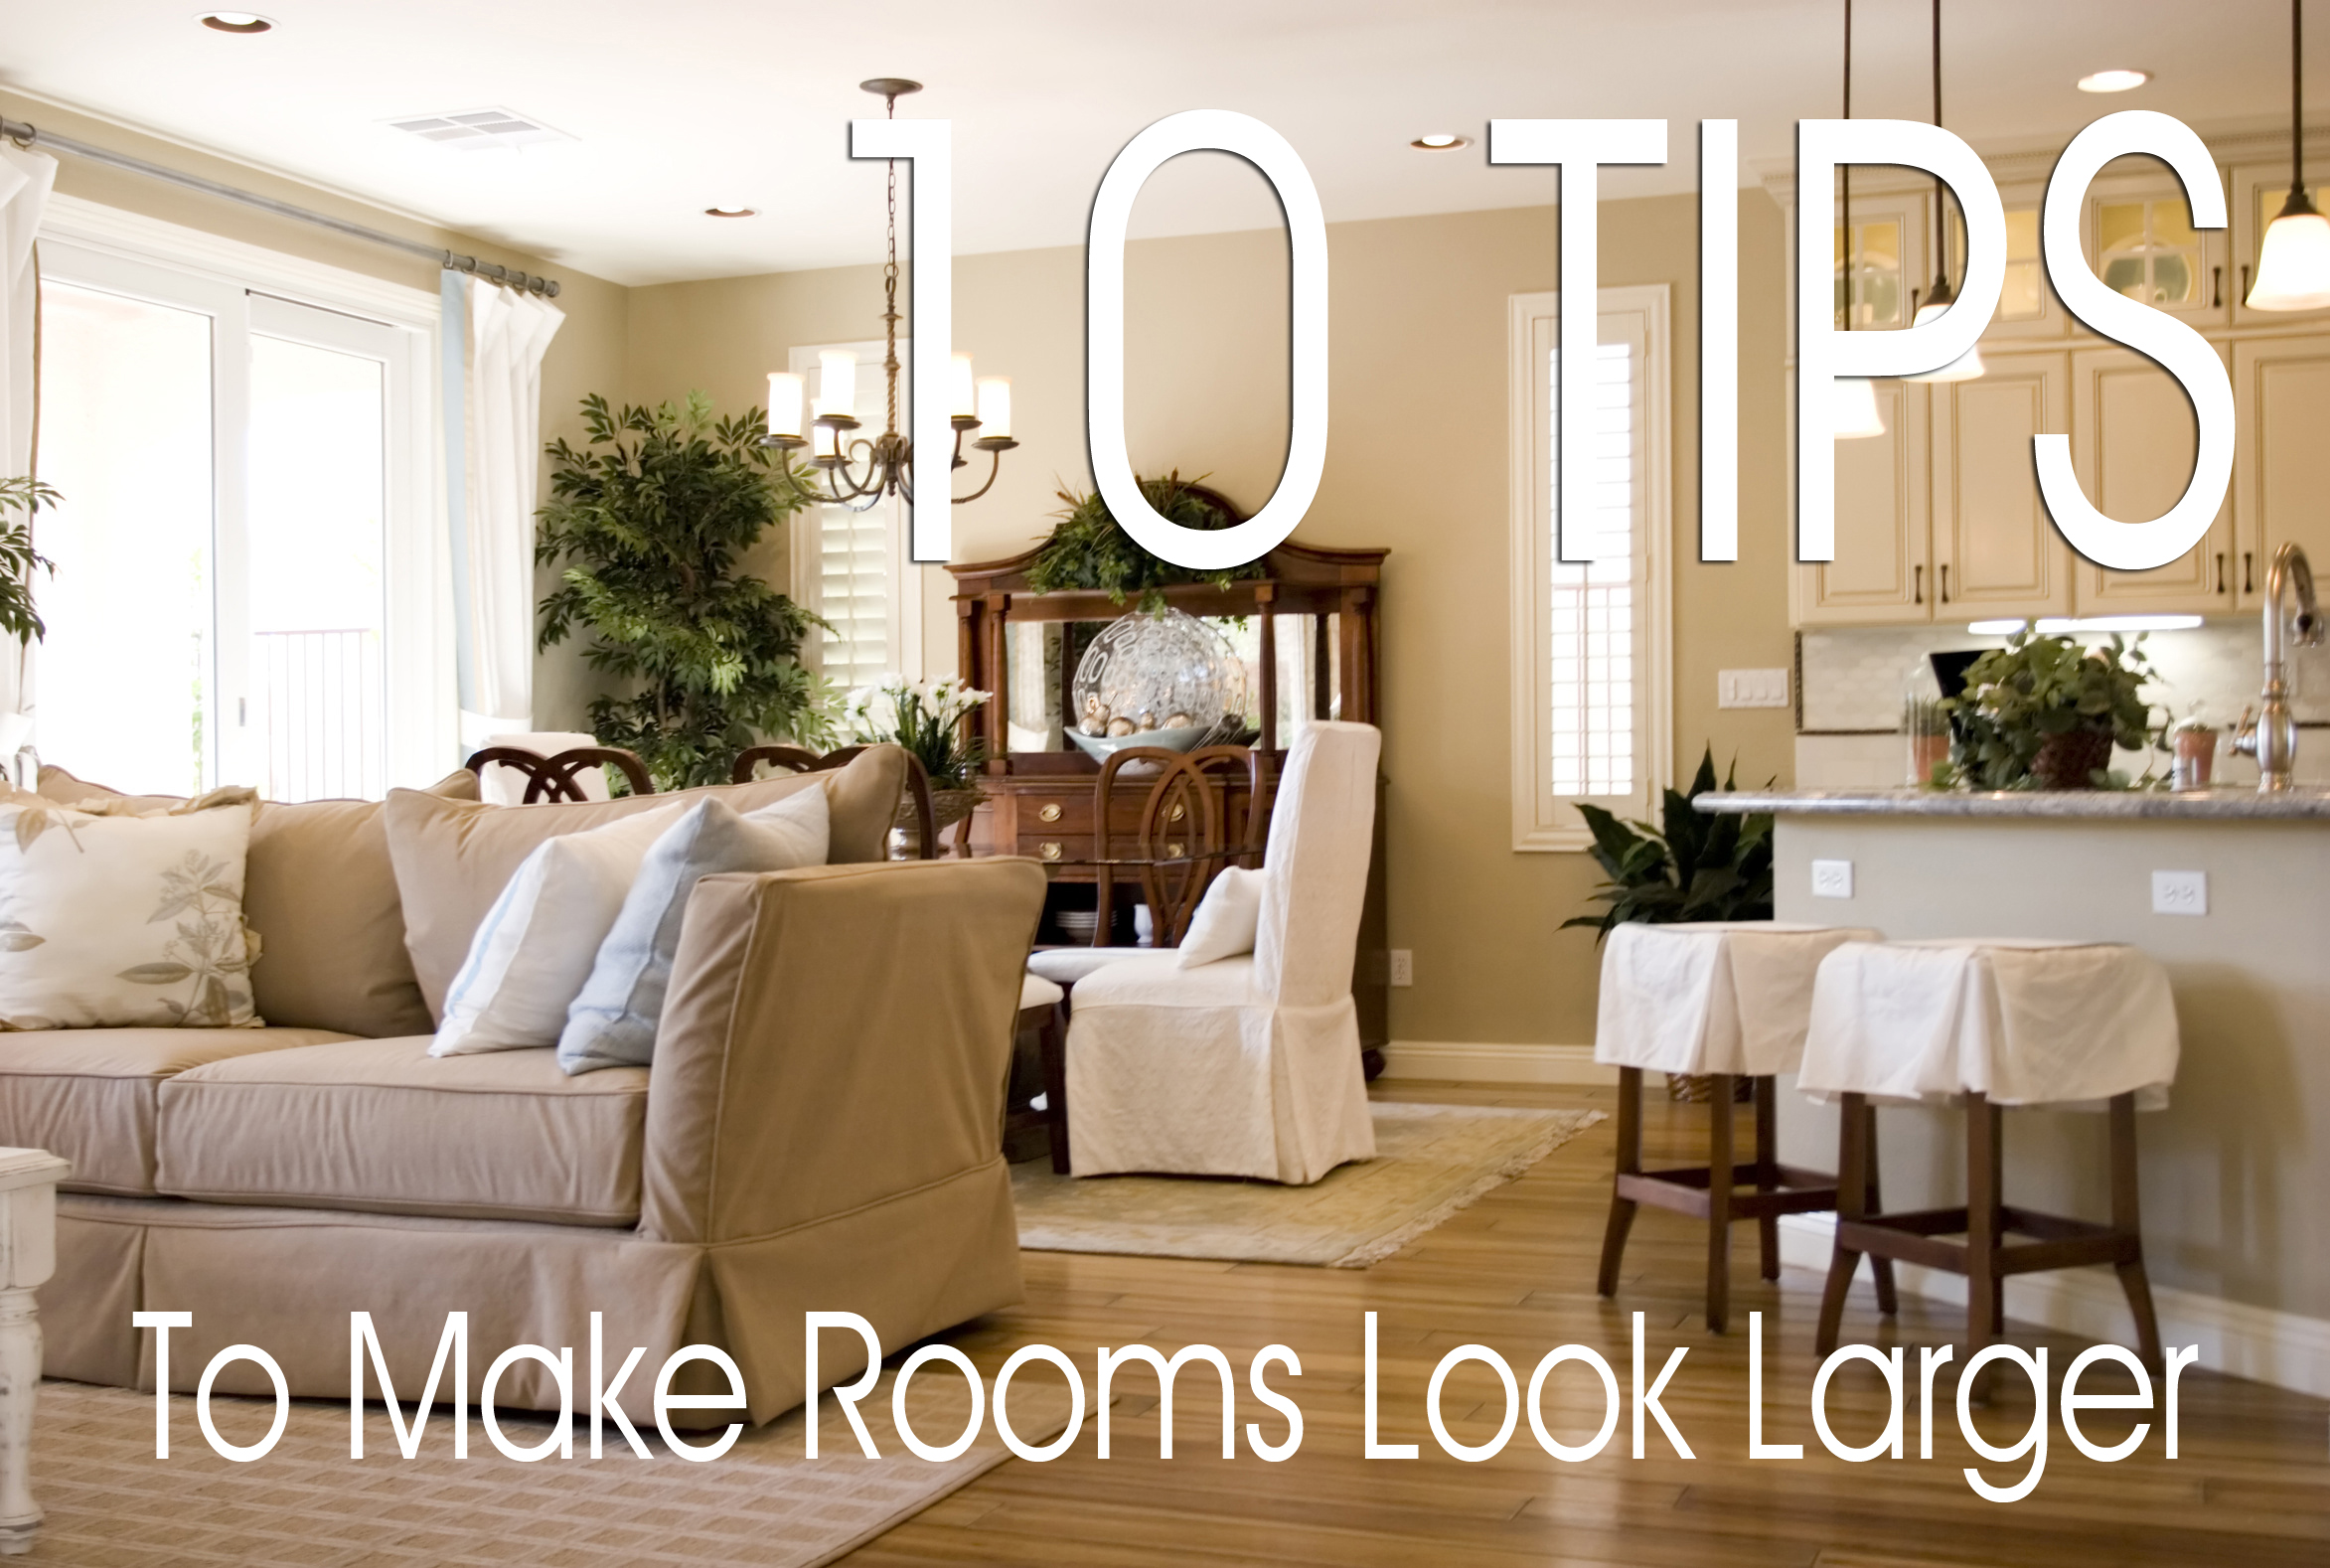 How to make small rooms look larger sibcy cline blog for How to make your small room beautiful